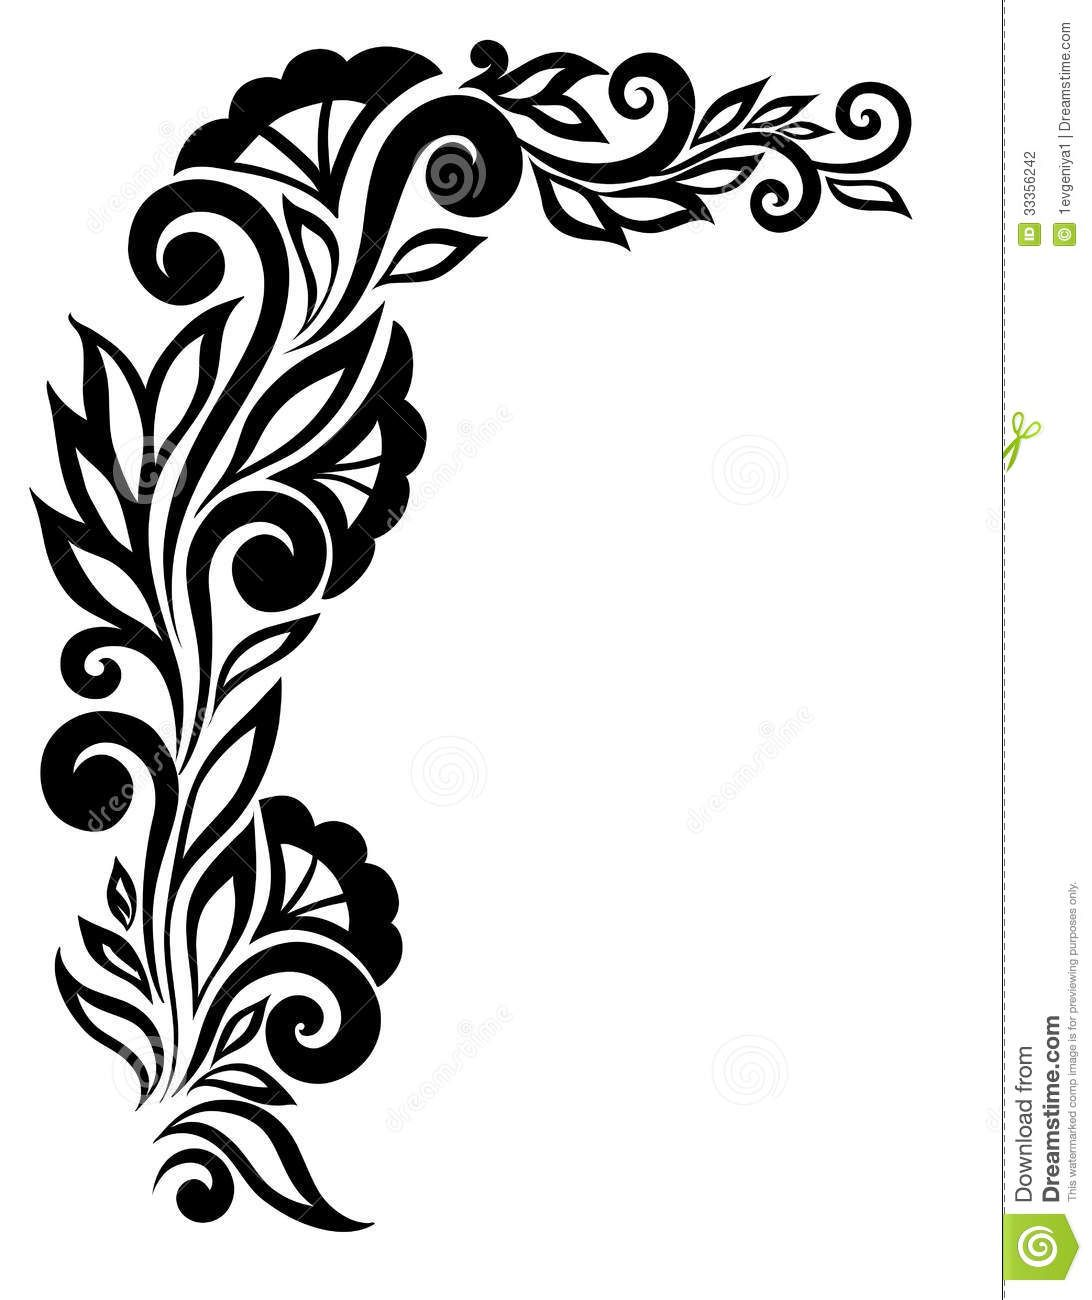 black and white border designs for projects Google